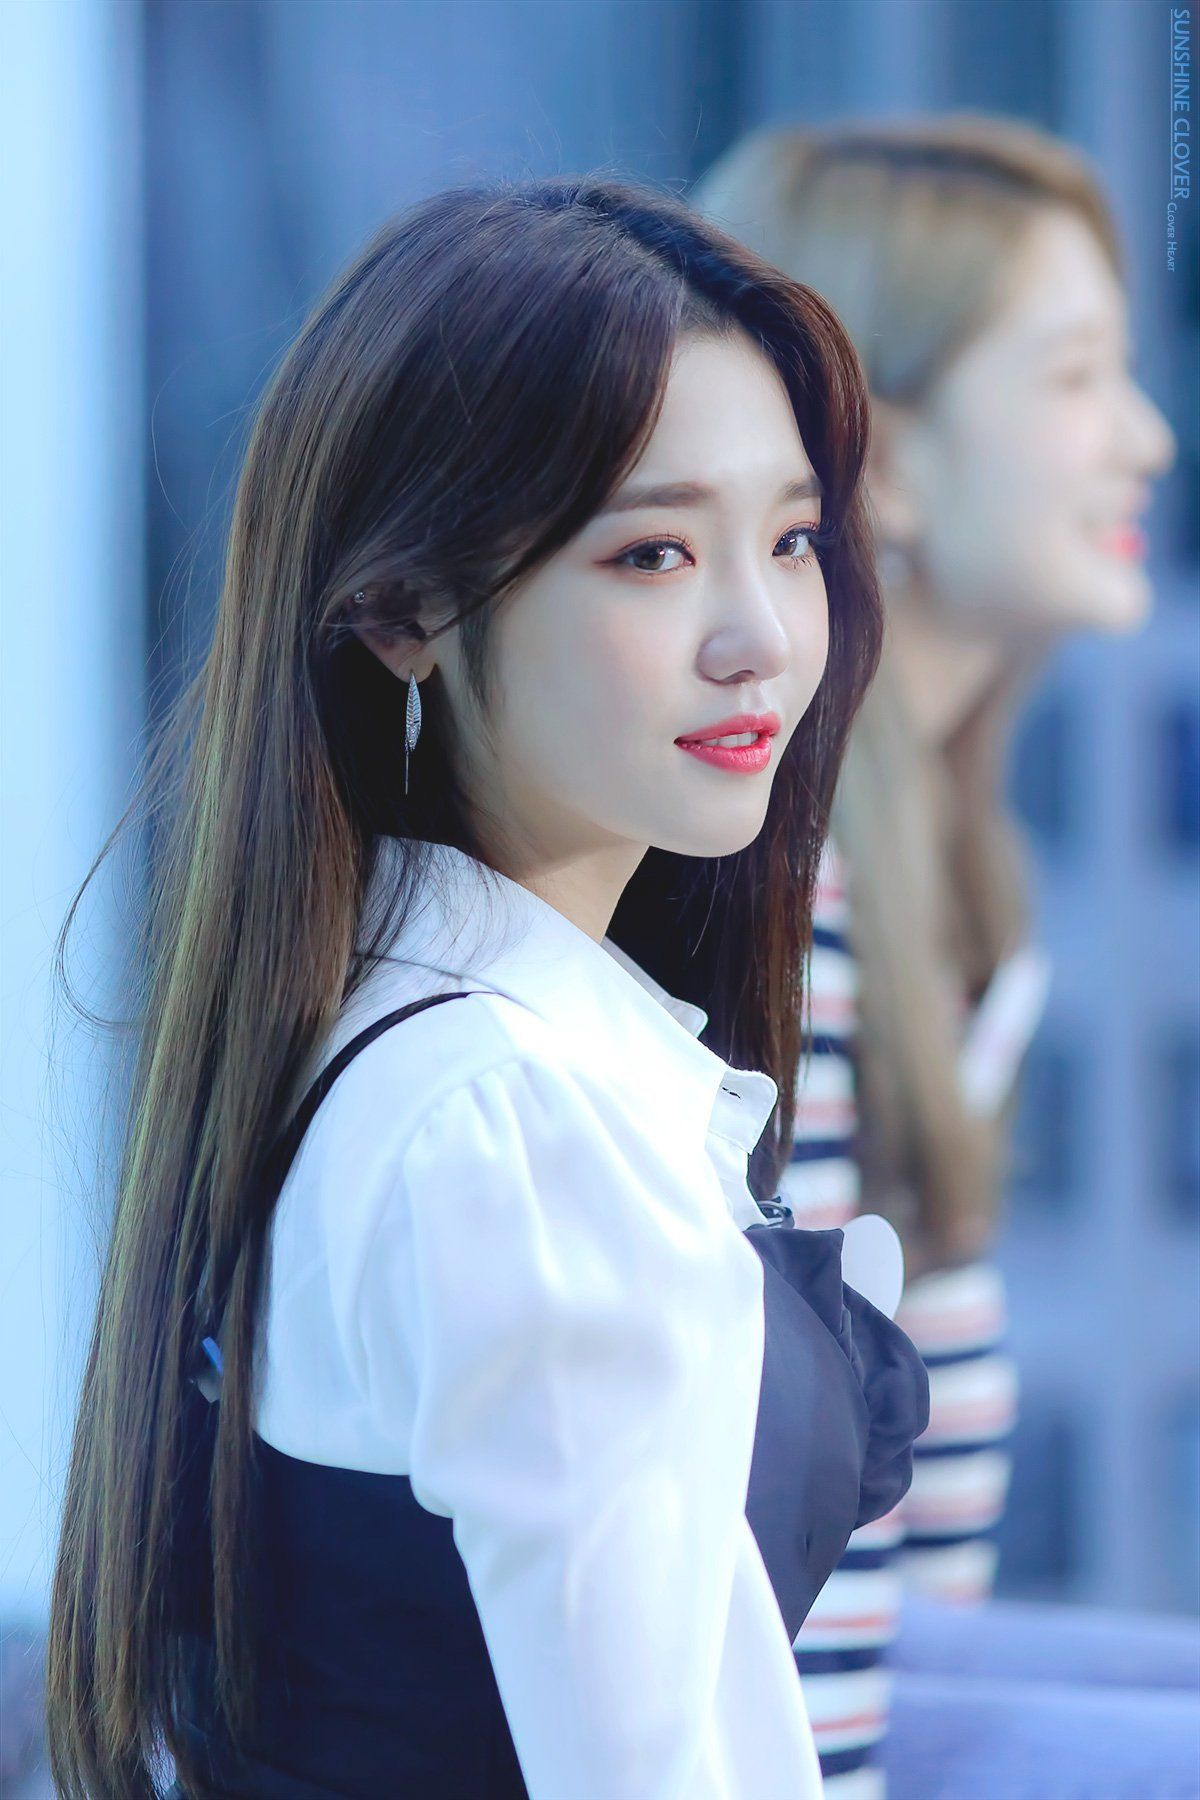 Pin By Lex On Roh Jisun Fromis 9 Kpop Girl Groups Asian Beauty Beauty